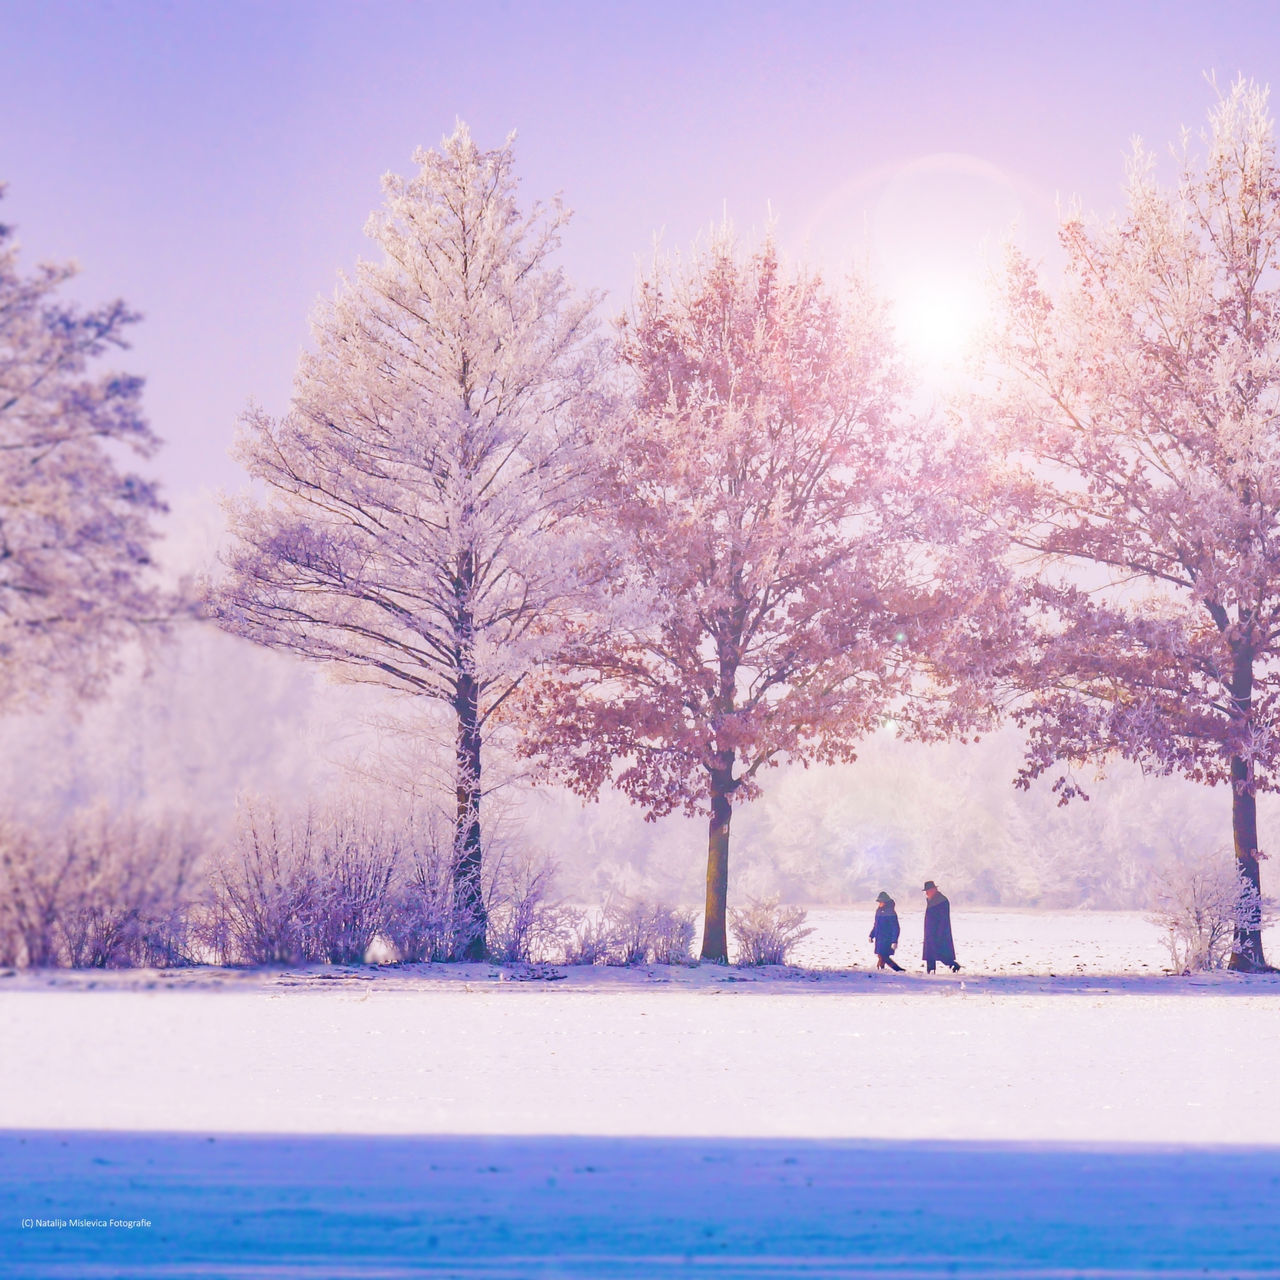 SCENIC VIEW OF TREES AGAINST SKY DURING WINTER